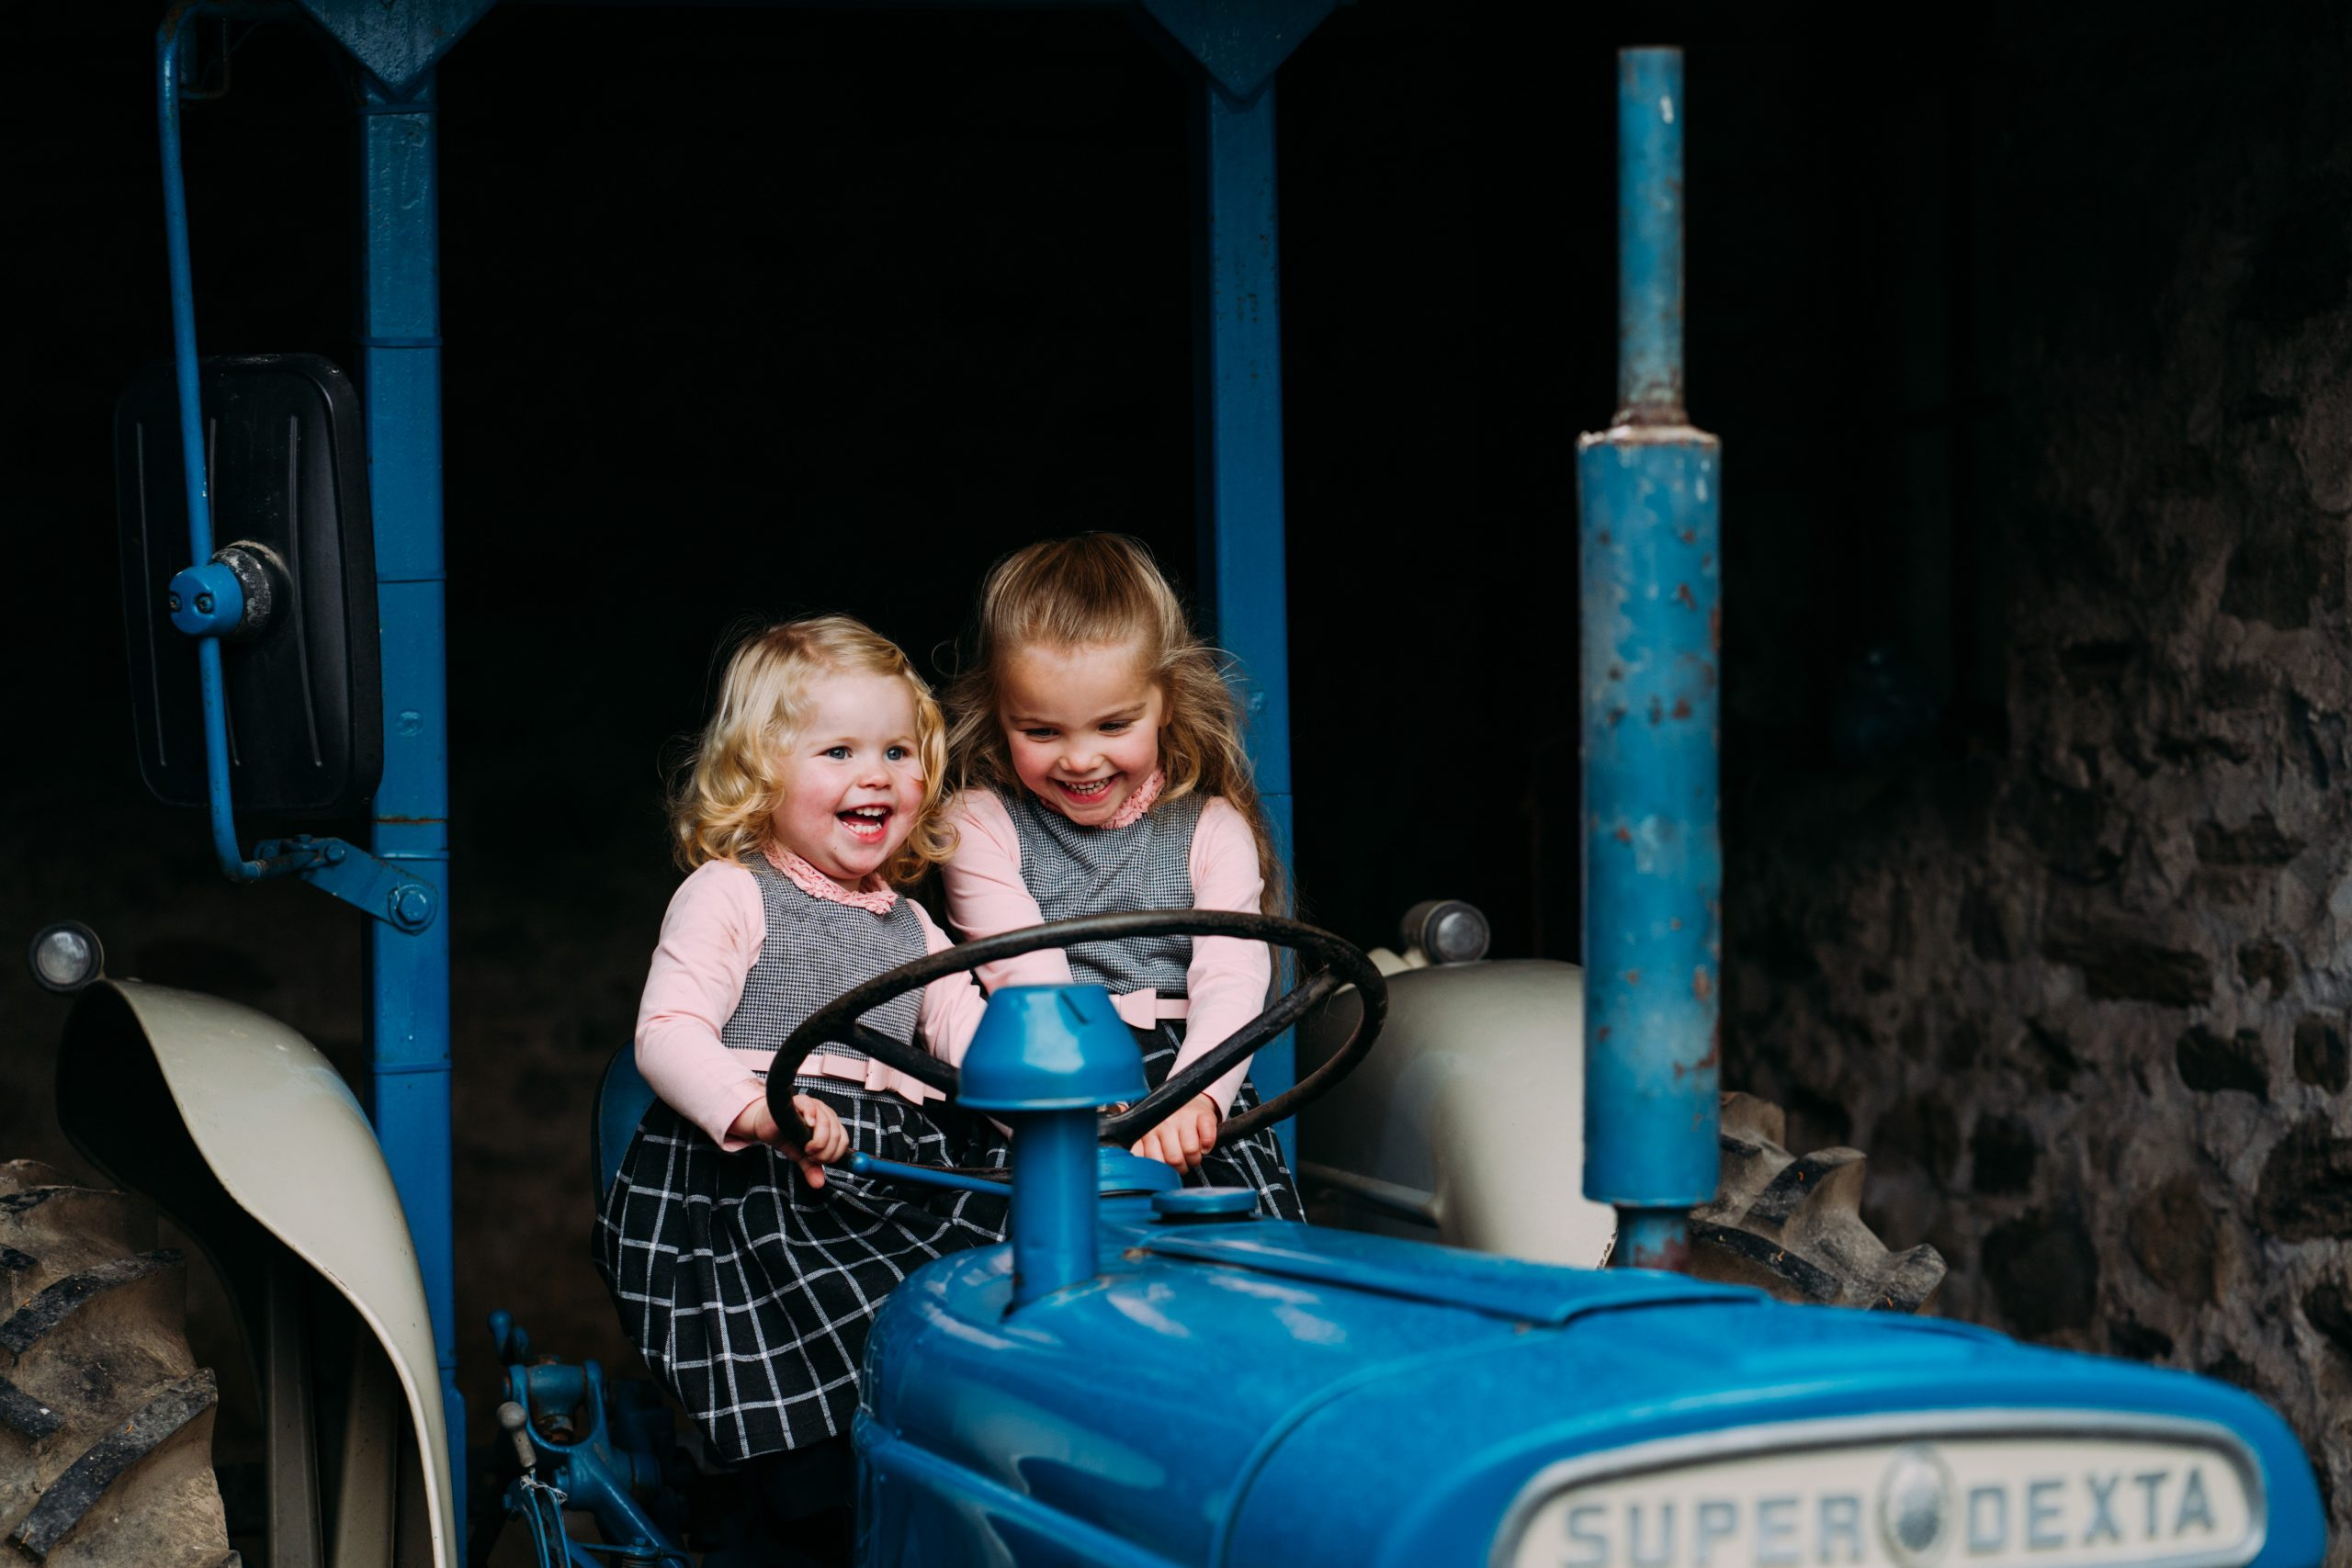 Sisters on tractors